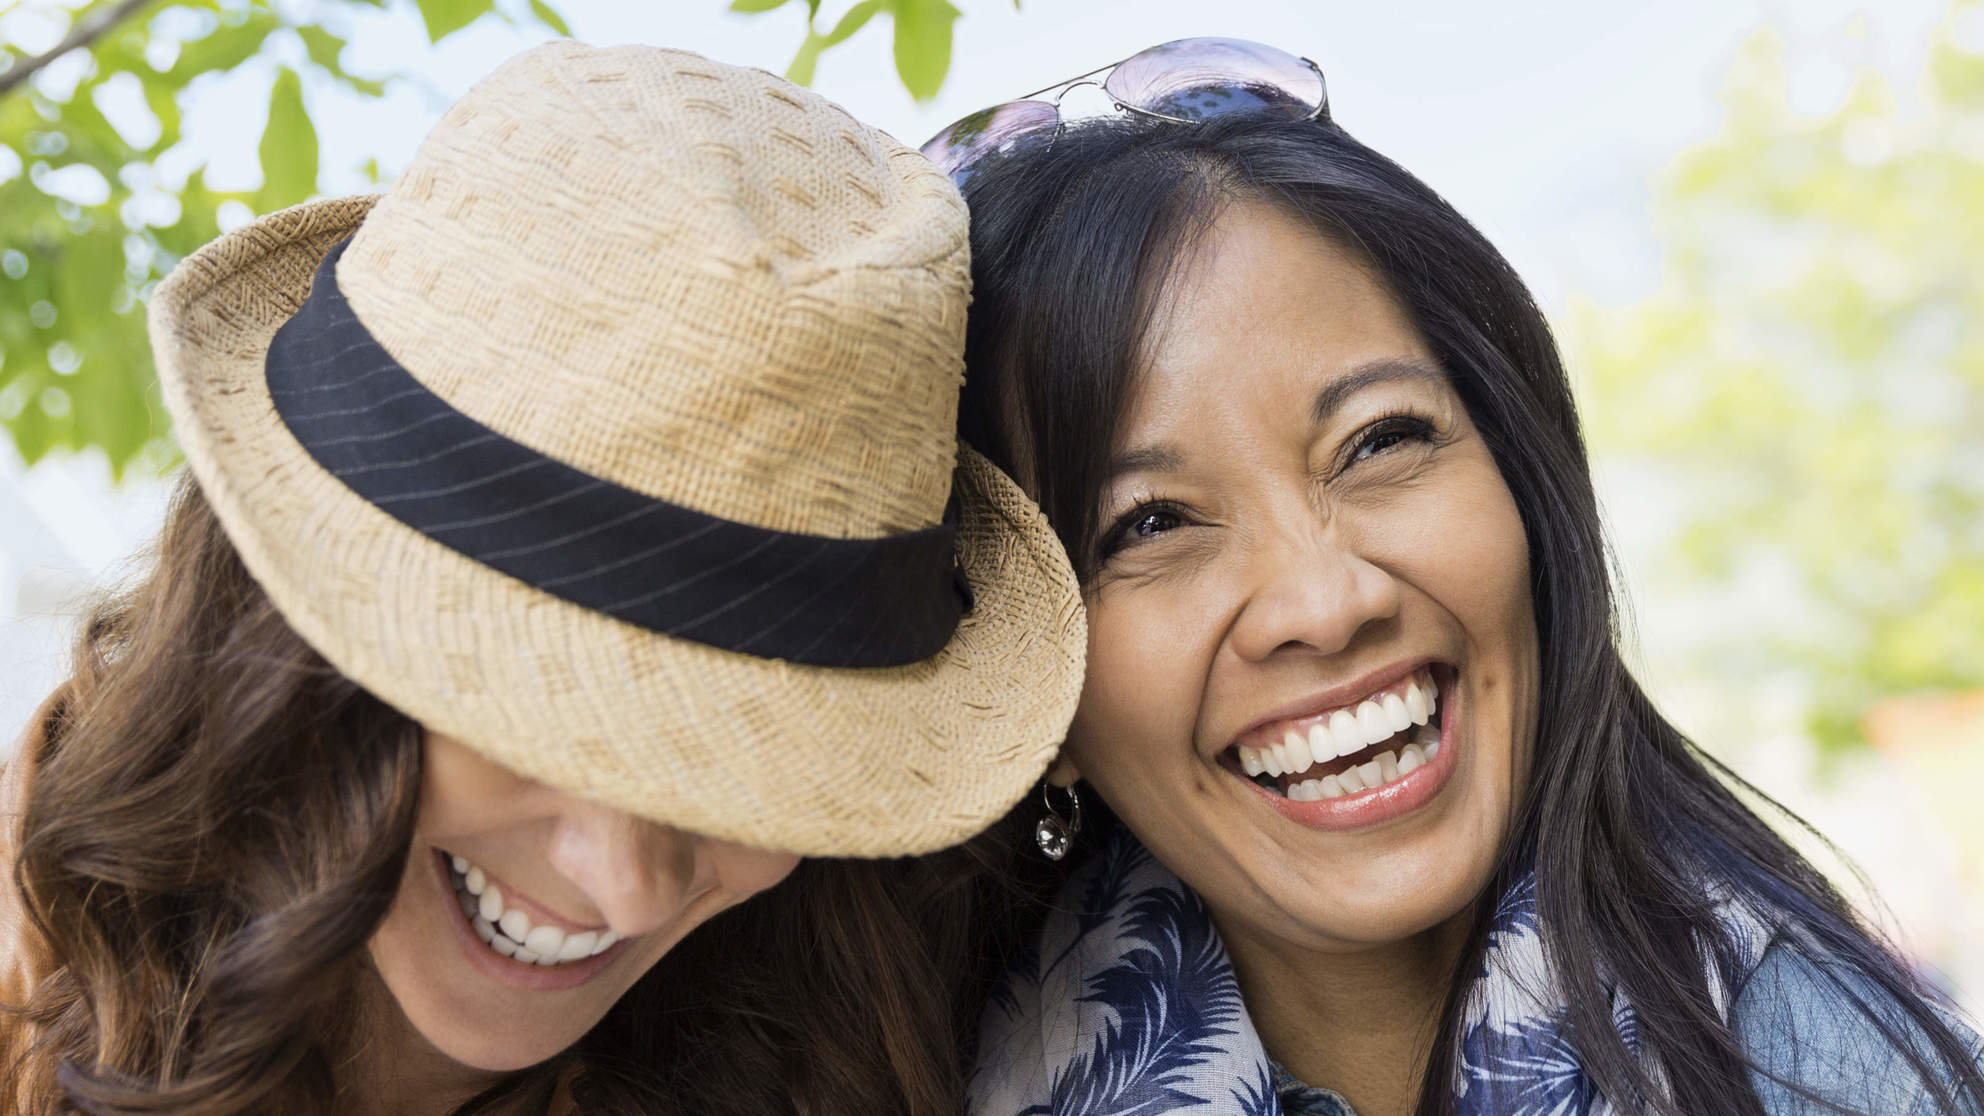 Having a Best Friend May Boost ResilienceDuring Tough Times